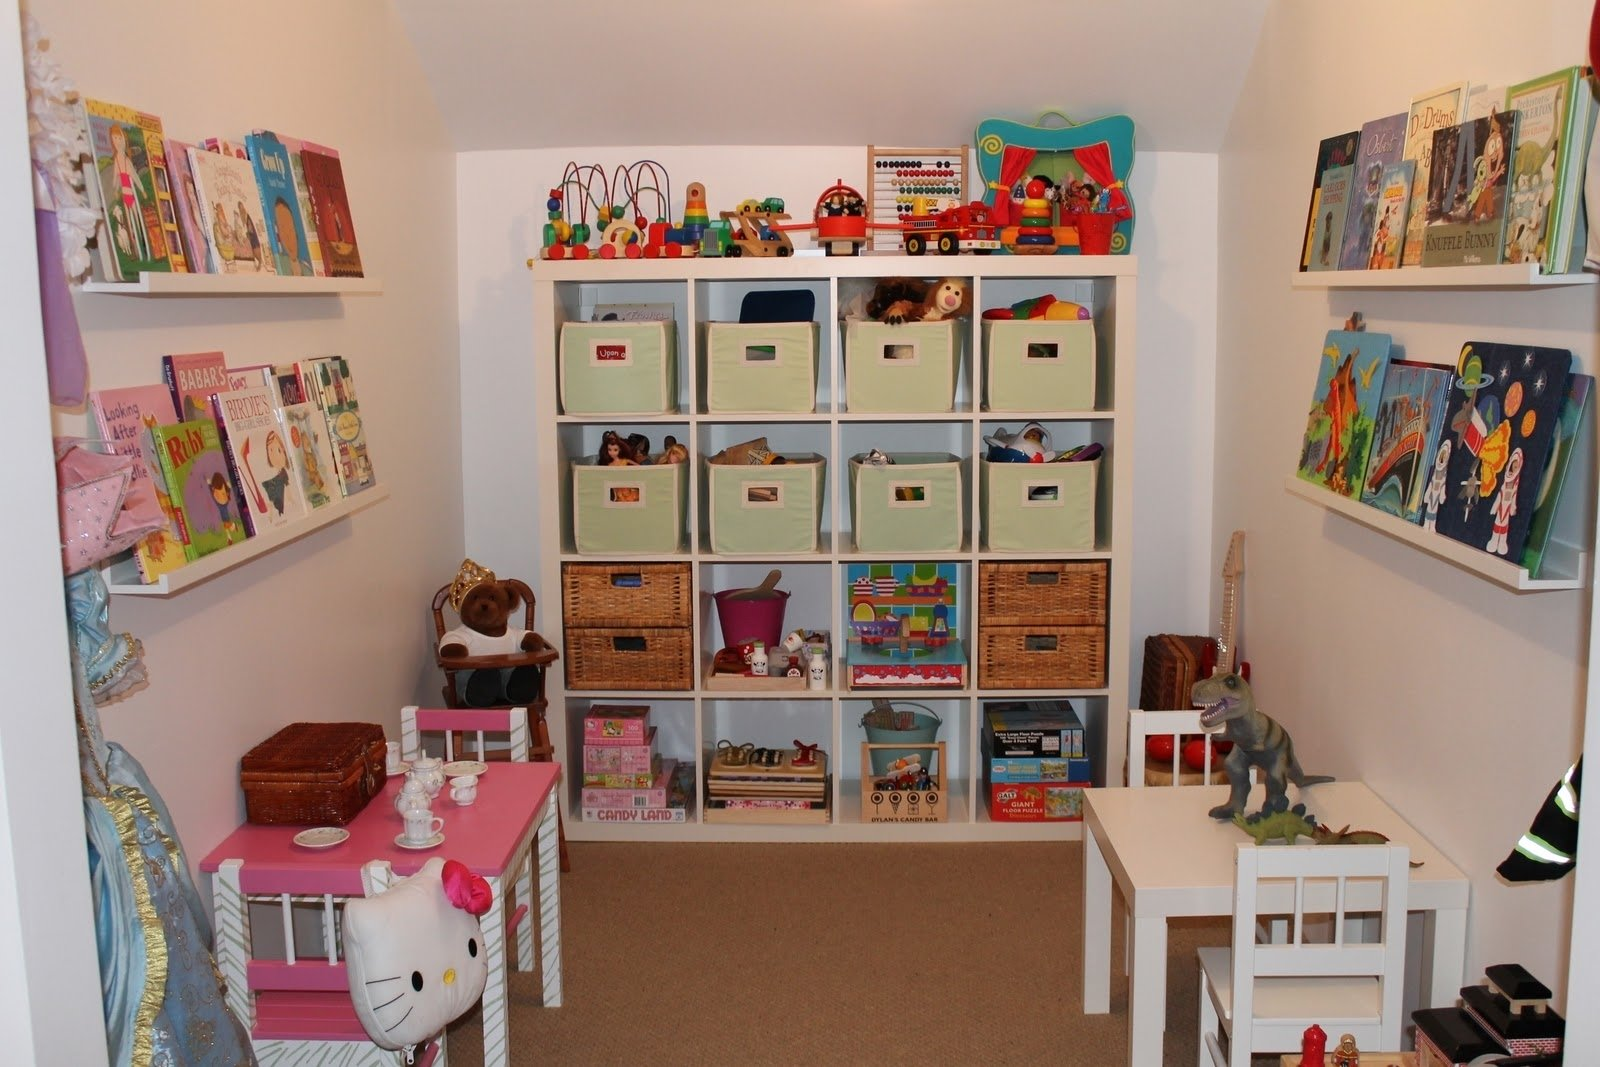 10 Nice Playroom Ideas For Small Spaces simple kids playroom design ideas for small spaces fun and cheerful 2020